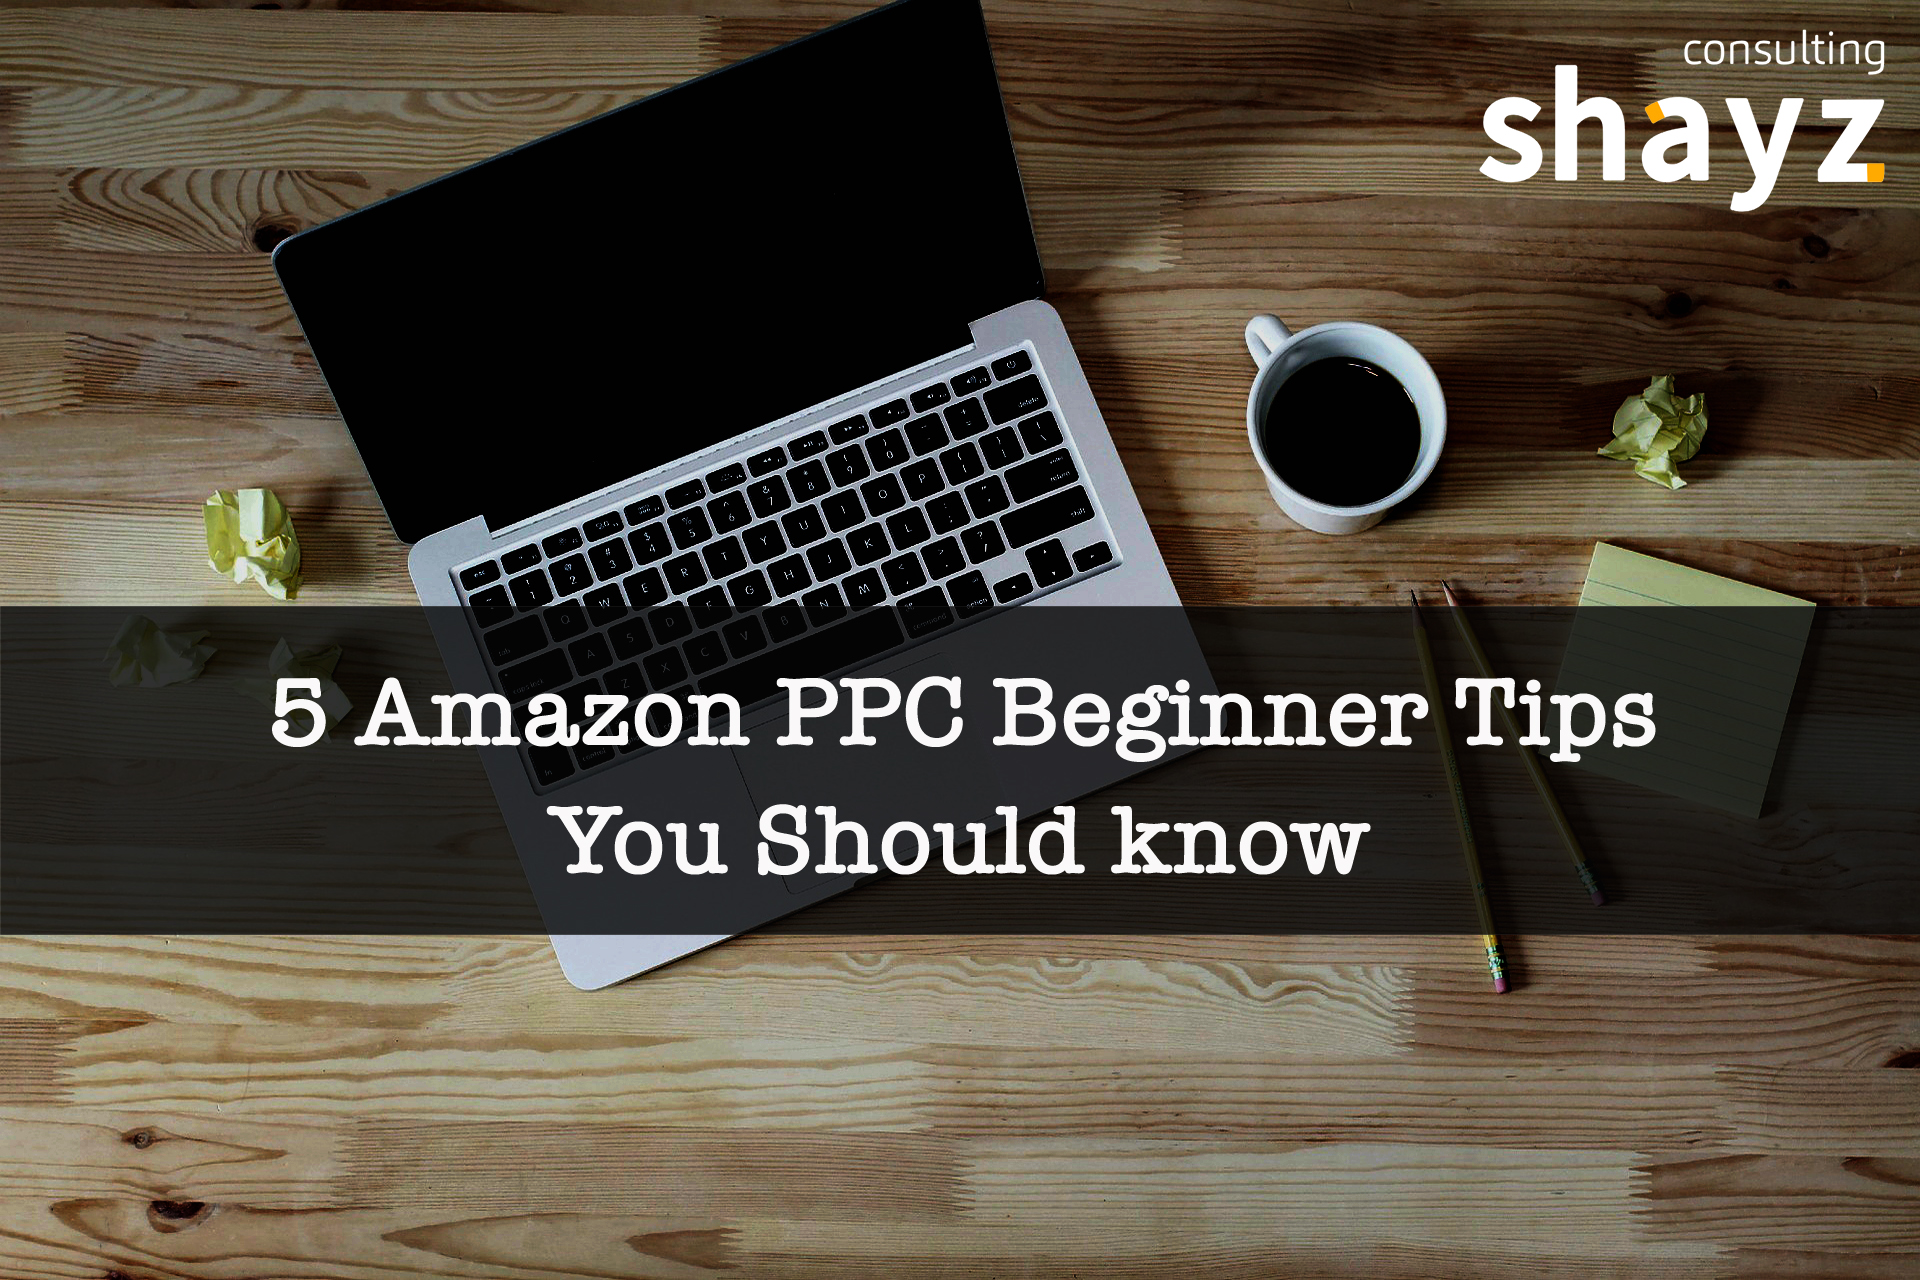 5 Amazon PPC Beginner Tips You Should Know